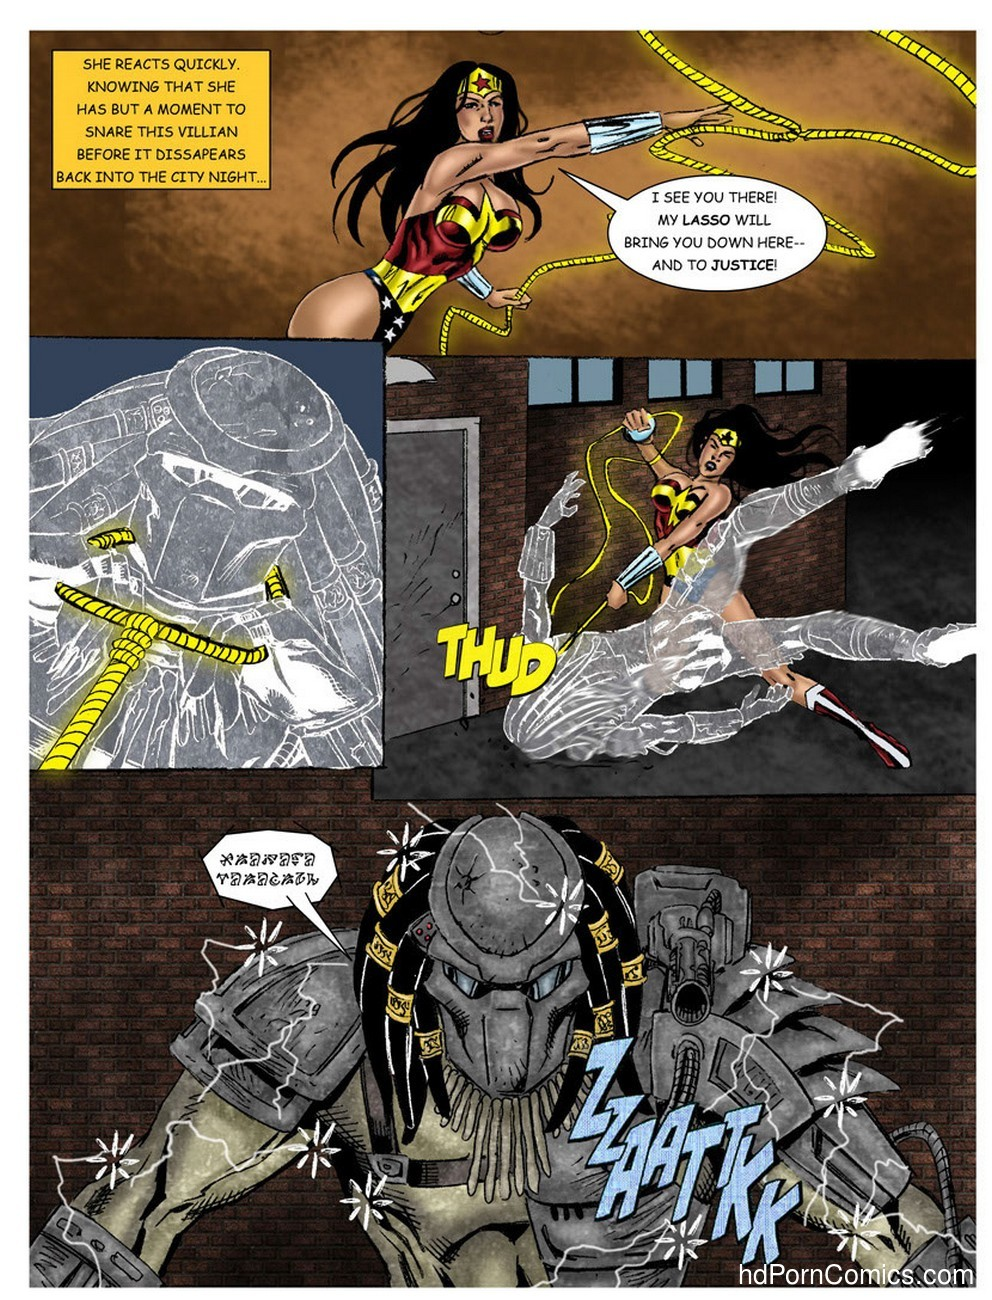 Wonder Woman - In The Clutches Of The Predator 1 8 free sex comic